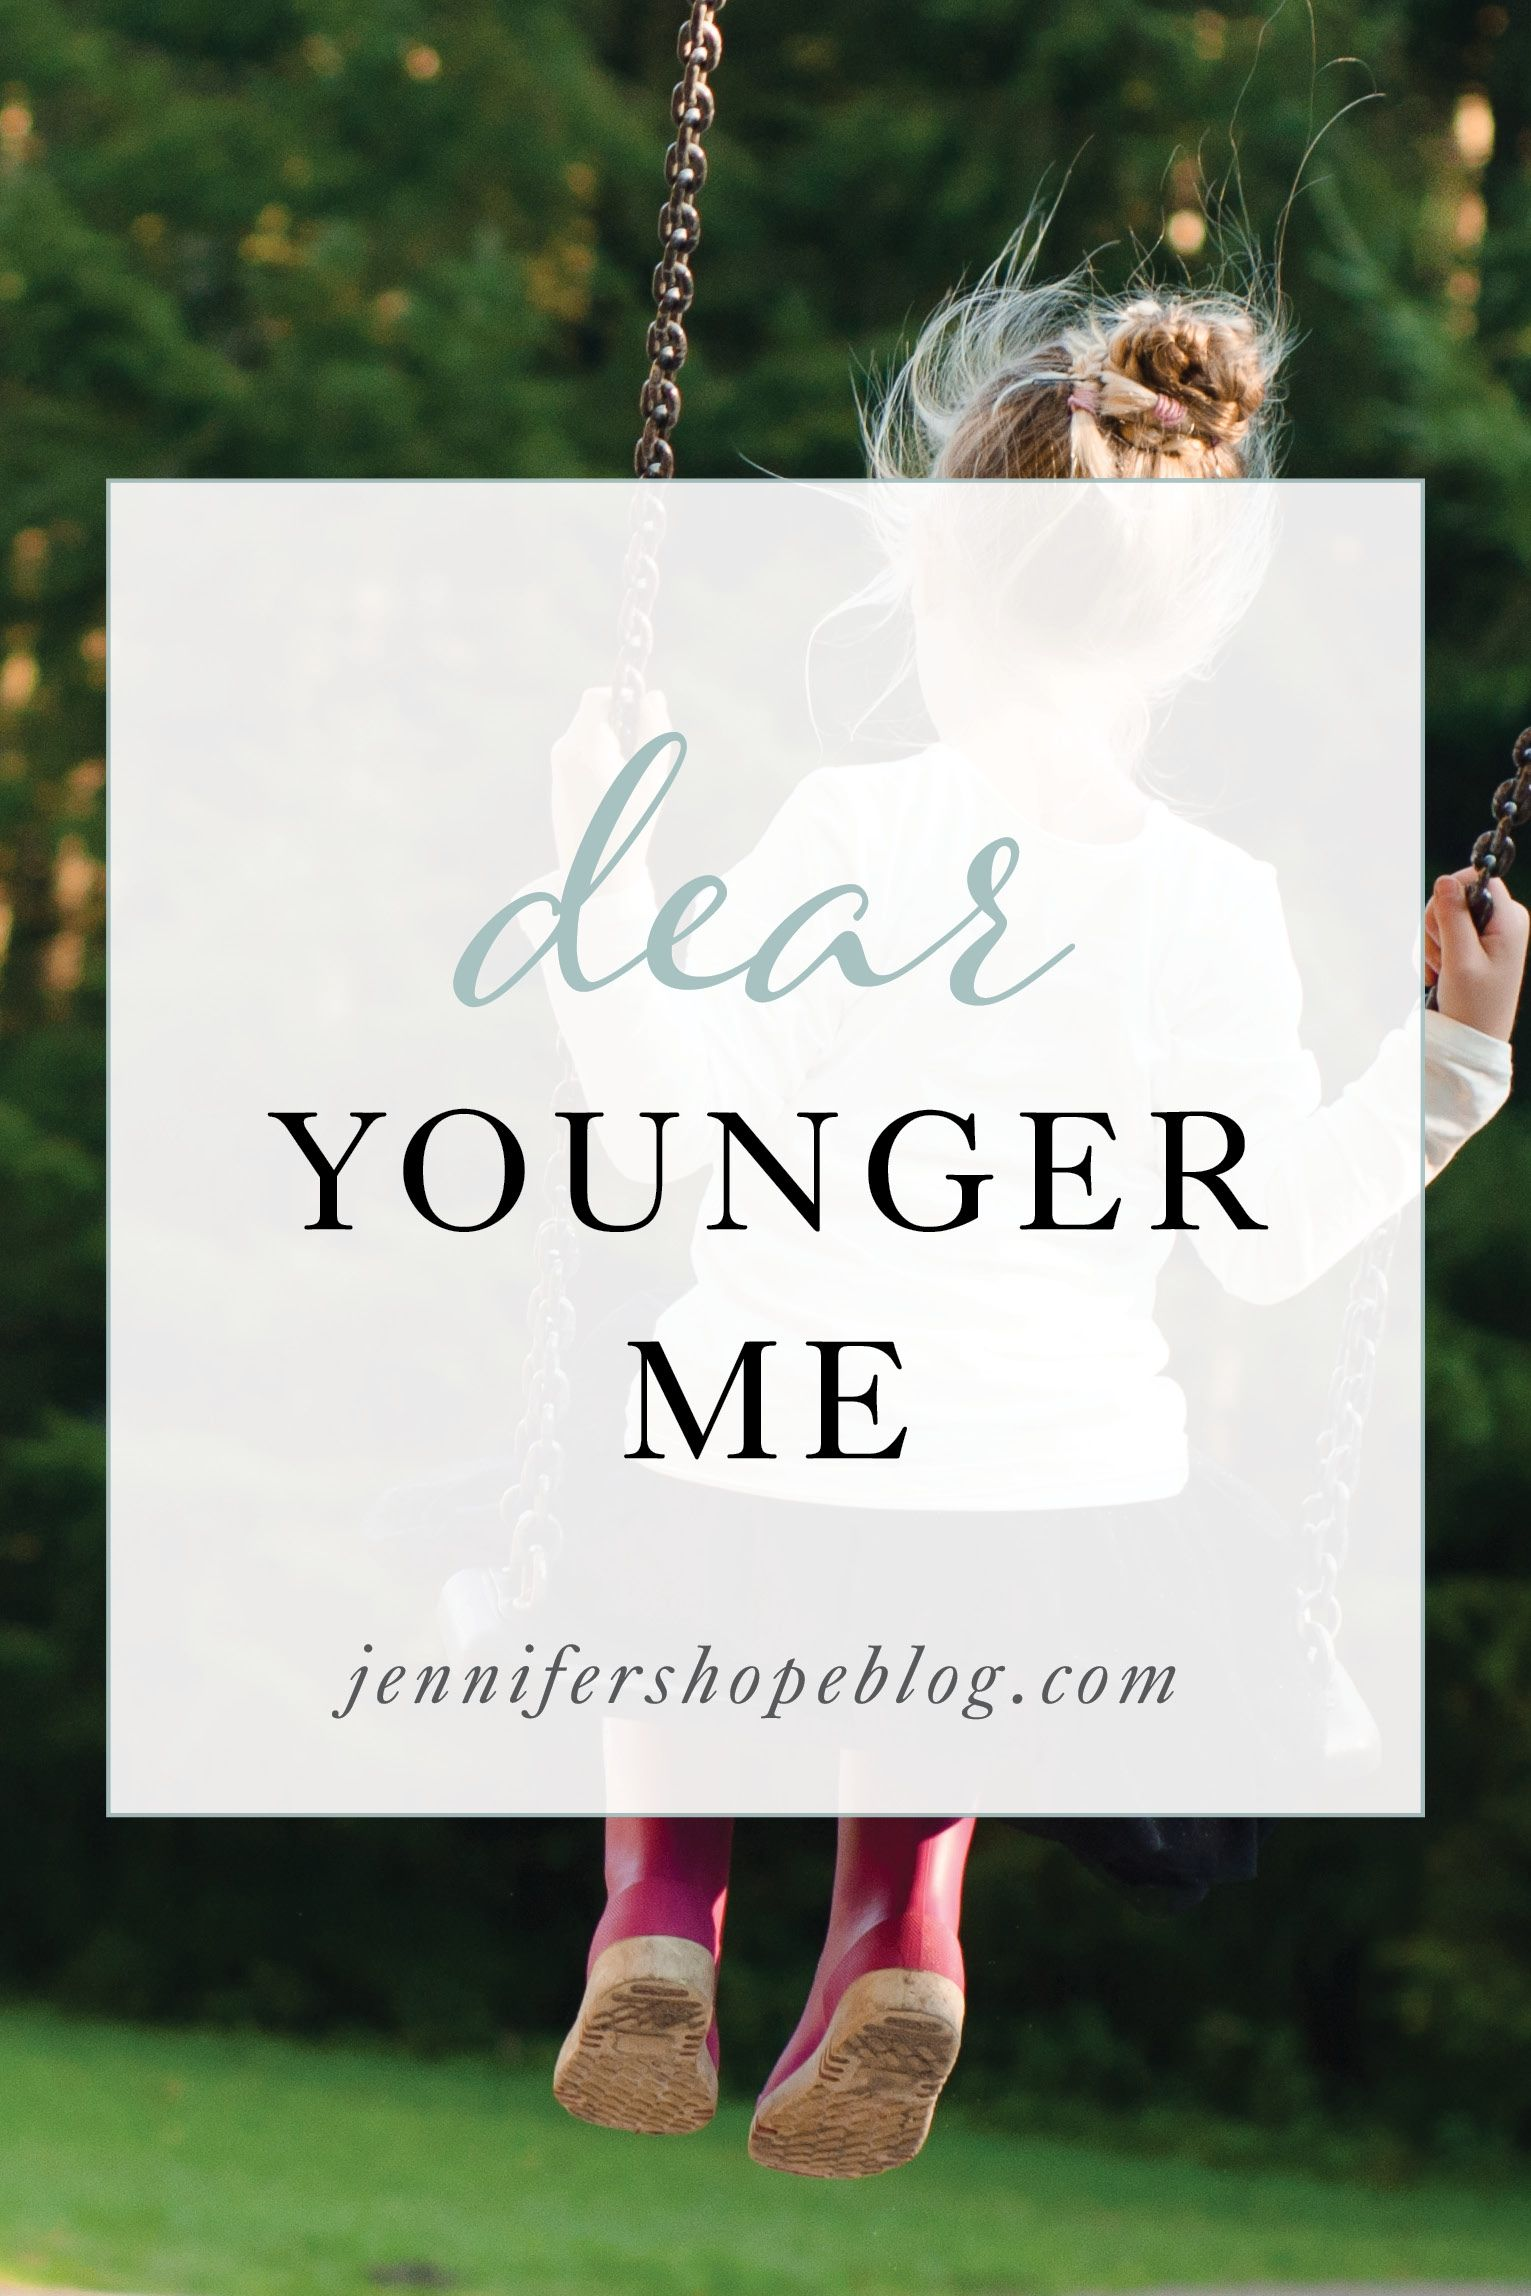 dear younger me mercyme christian quotes faith quotes